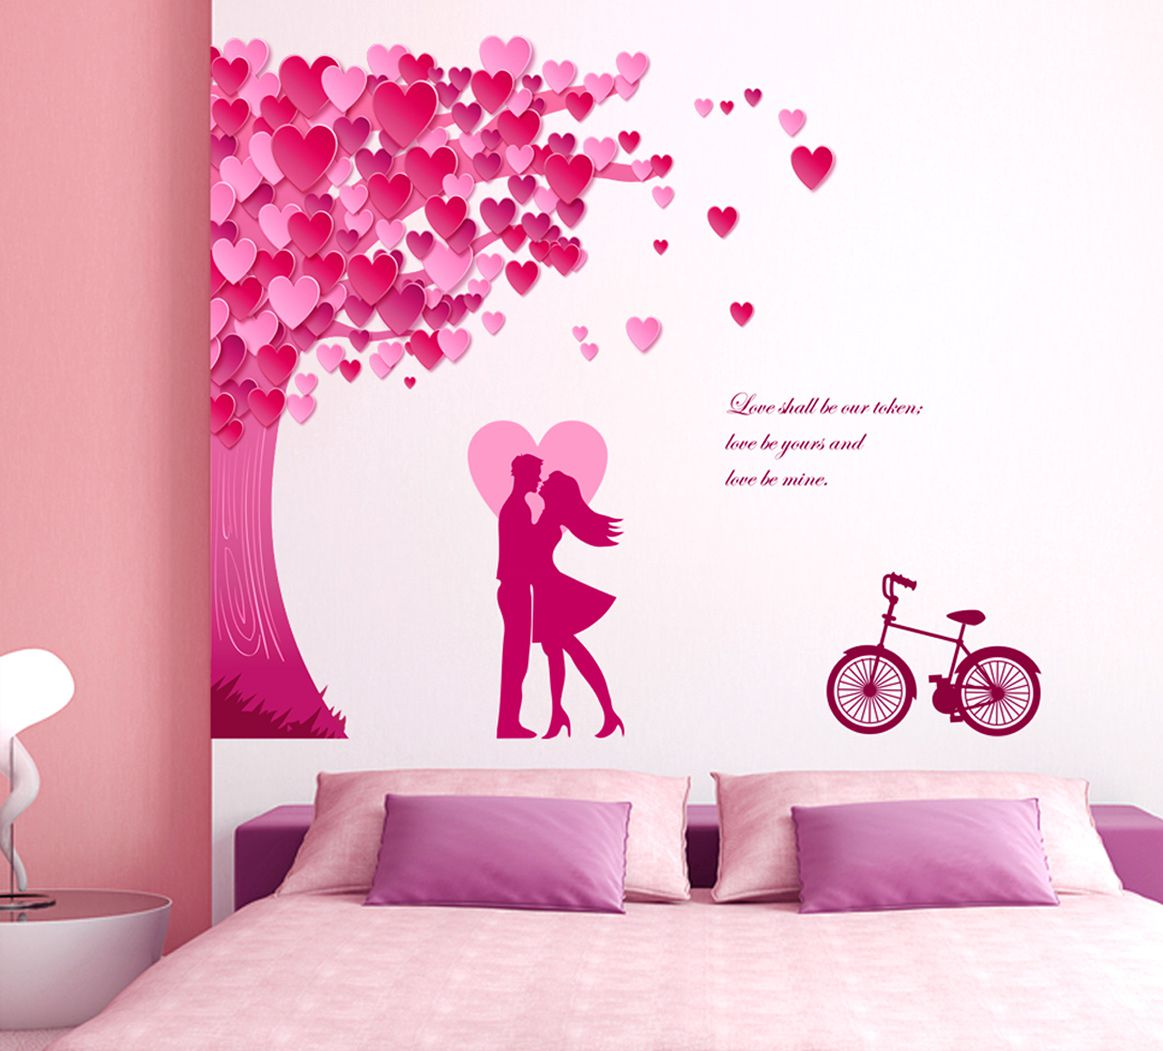 Stickerskart Multicolor Romantic Couple Decor The Heart Leaves Tree And Love Quote With Bicycle Wall Stickers 90 x 105 cms